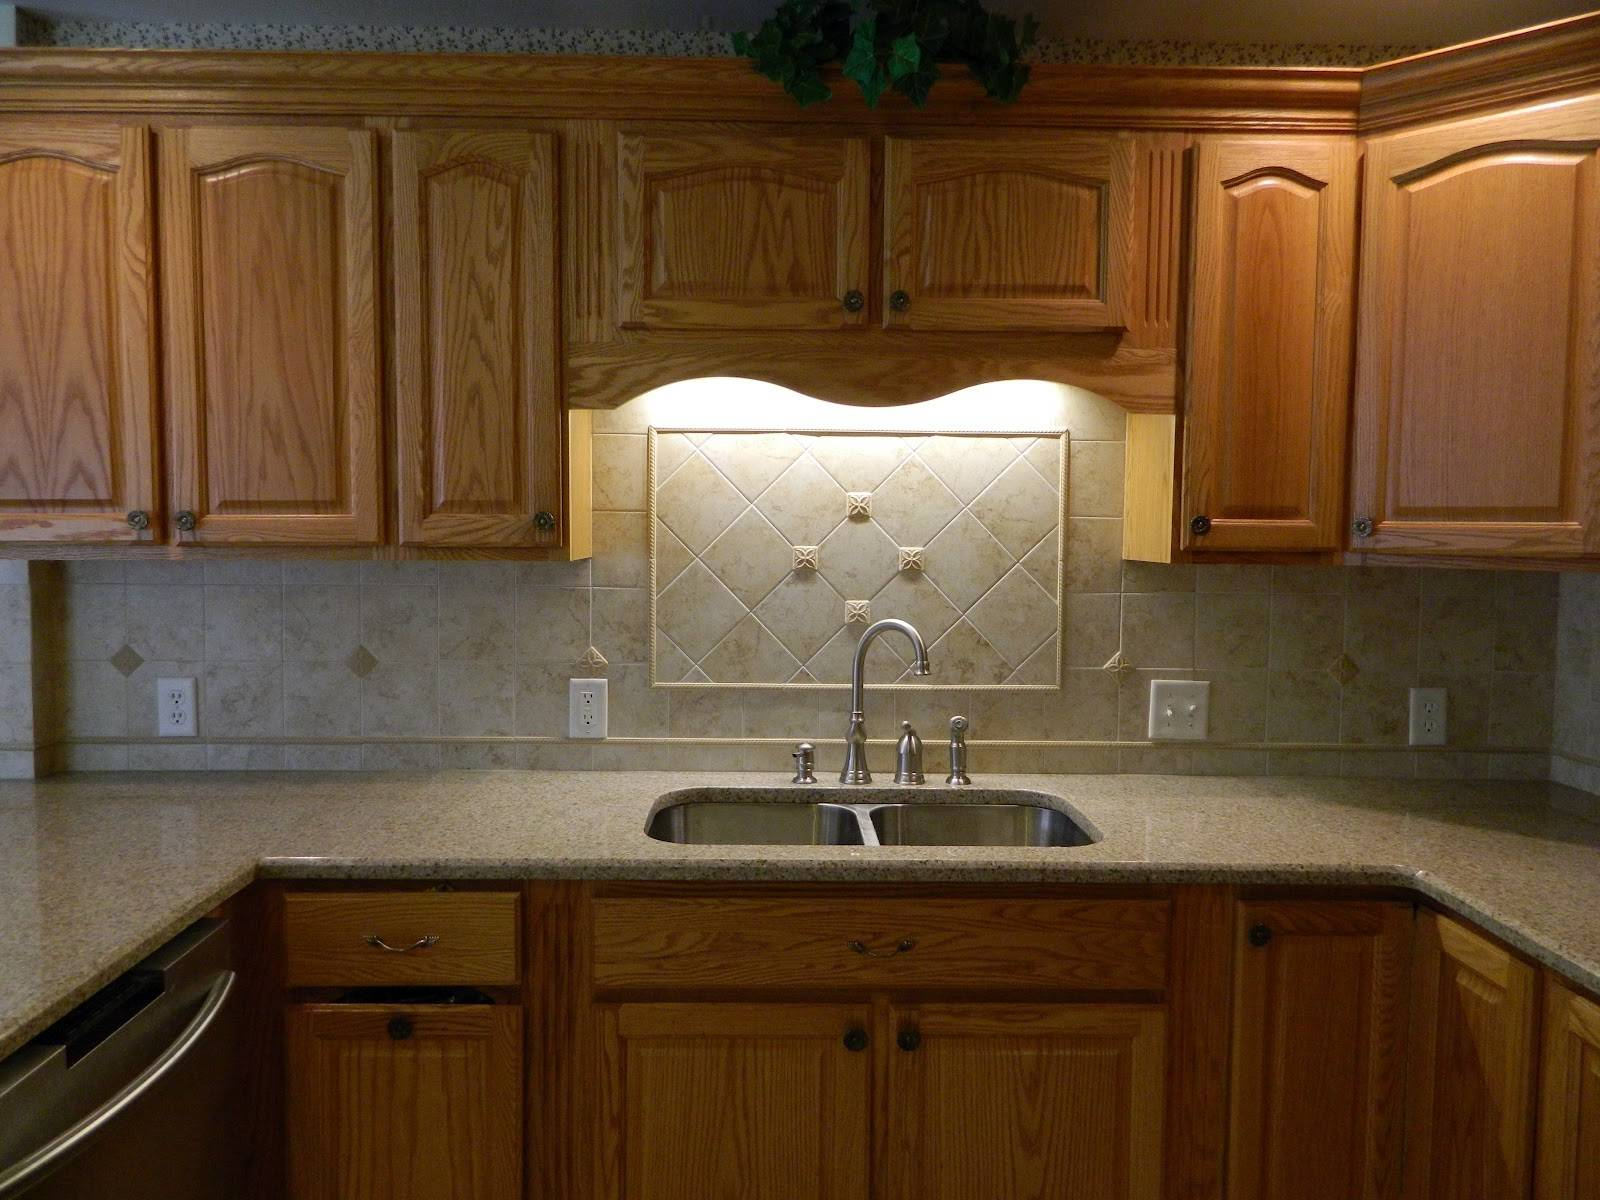 Kitchen Cabinets Countertop Ideas Imagestc